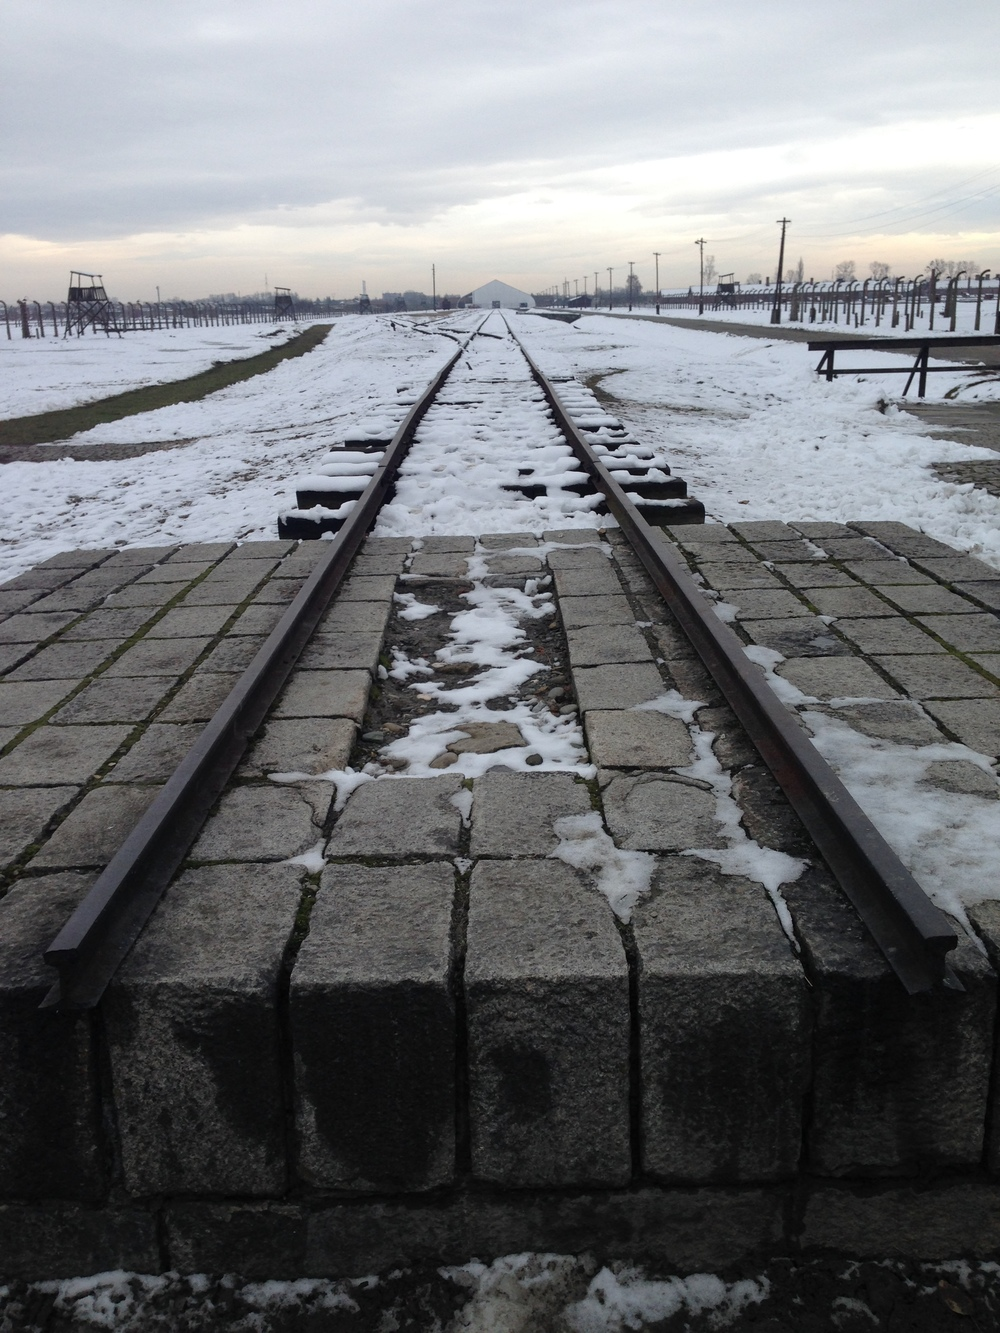 End of the line: The gateway is visible at the front of Auschwitz, though is partly obscured by a tent which was used for the 70th anniversary of the liberation of Auschwitz remembrance service.